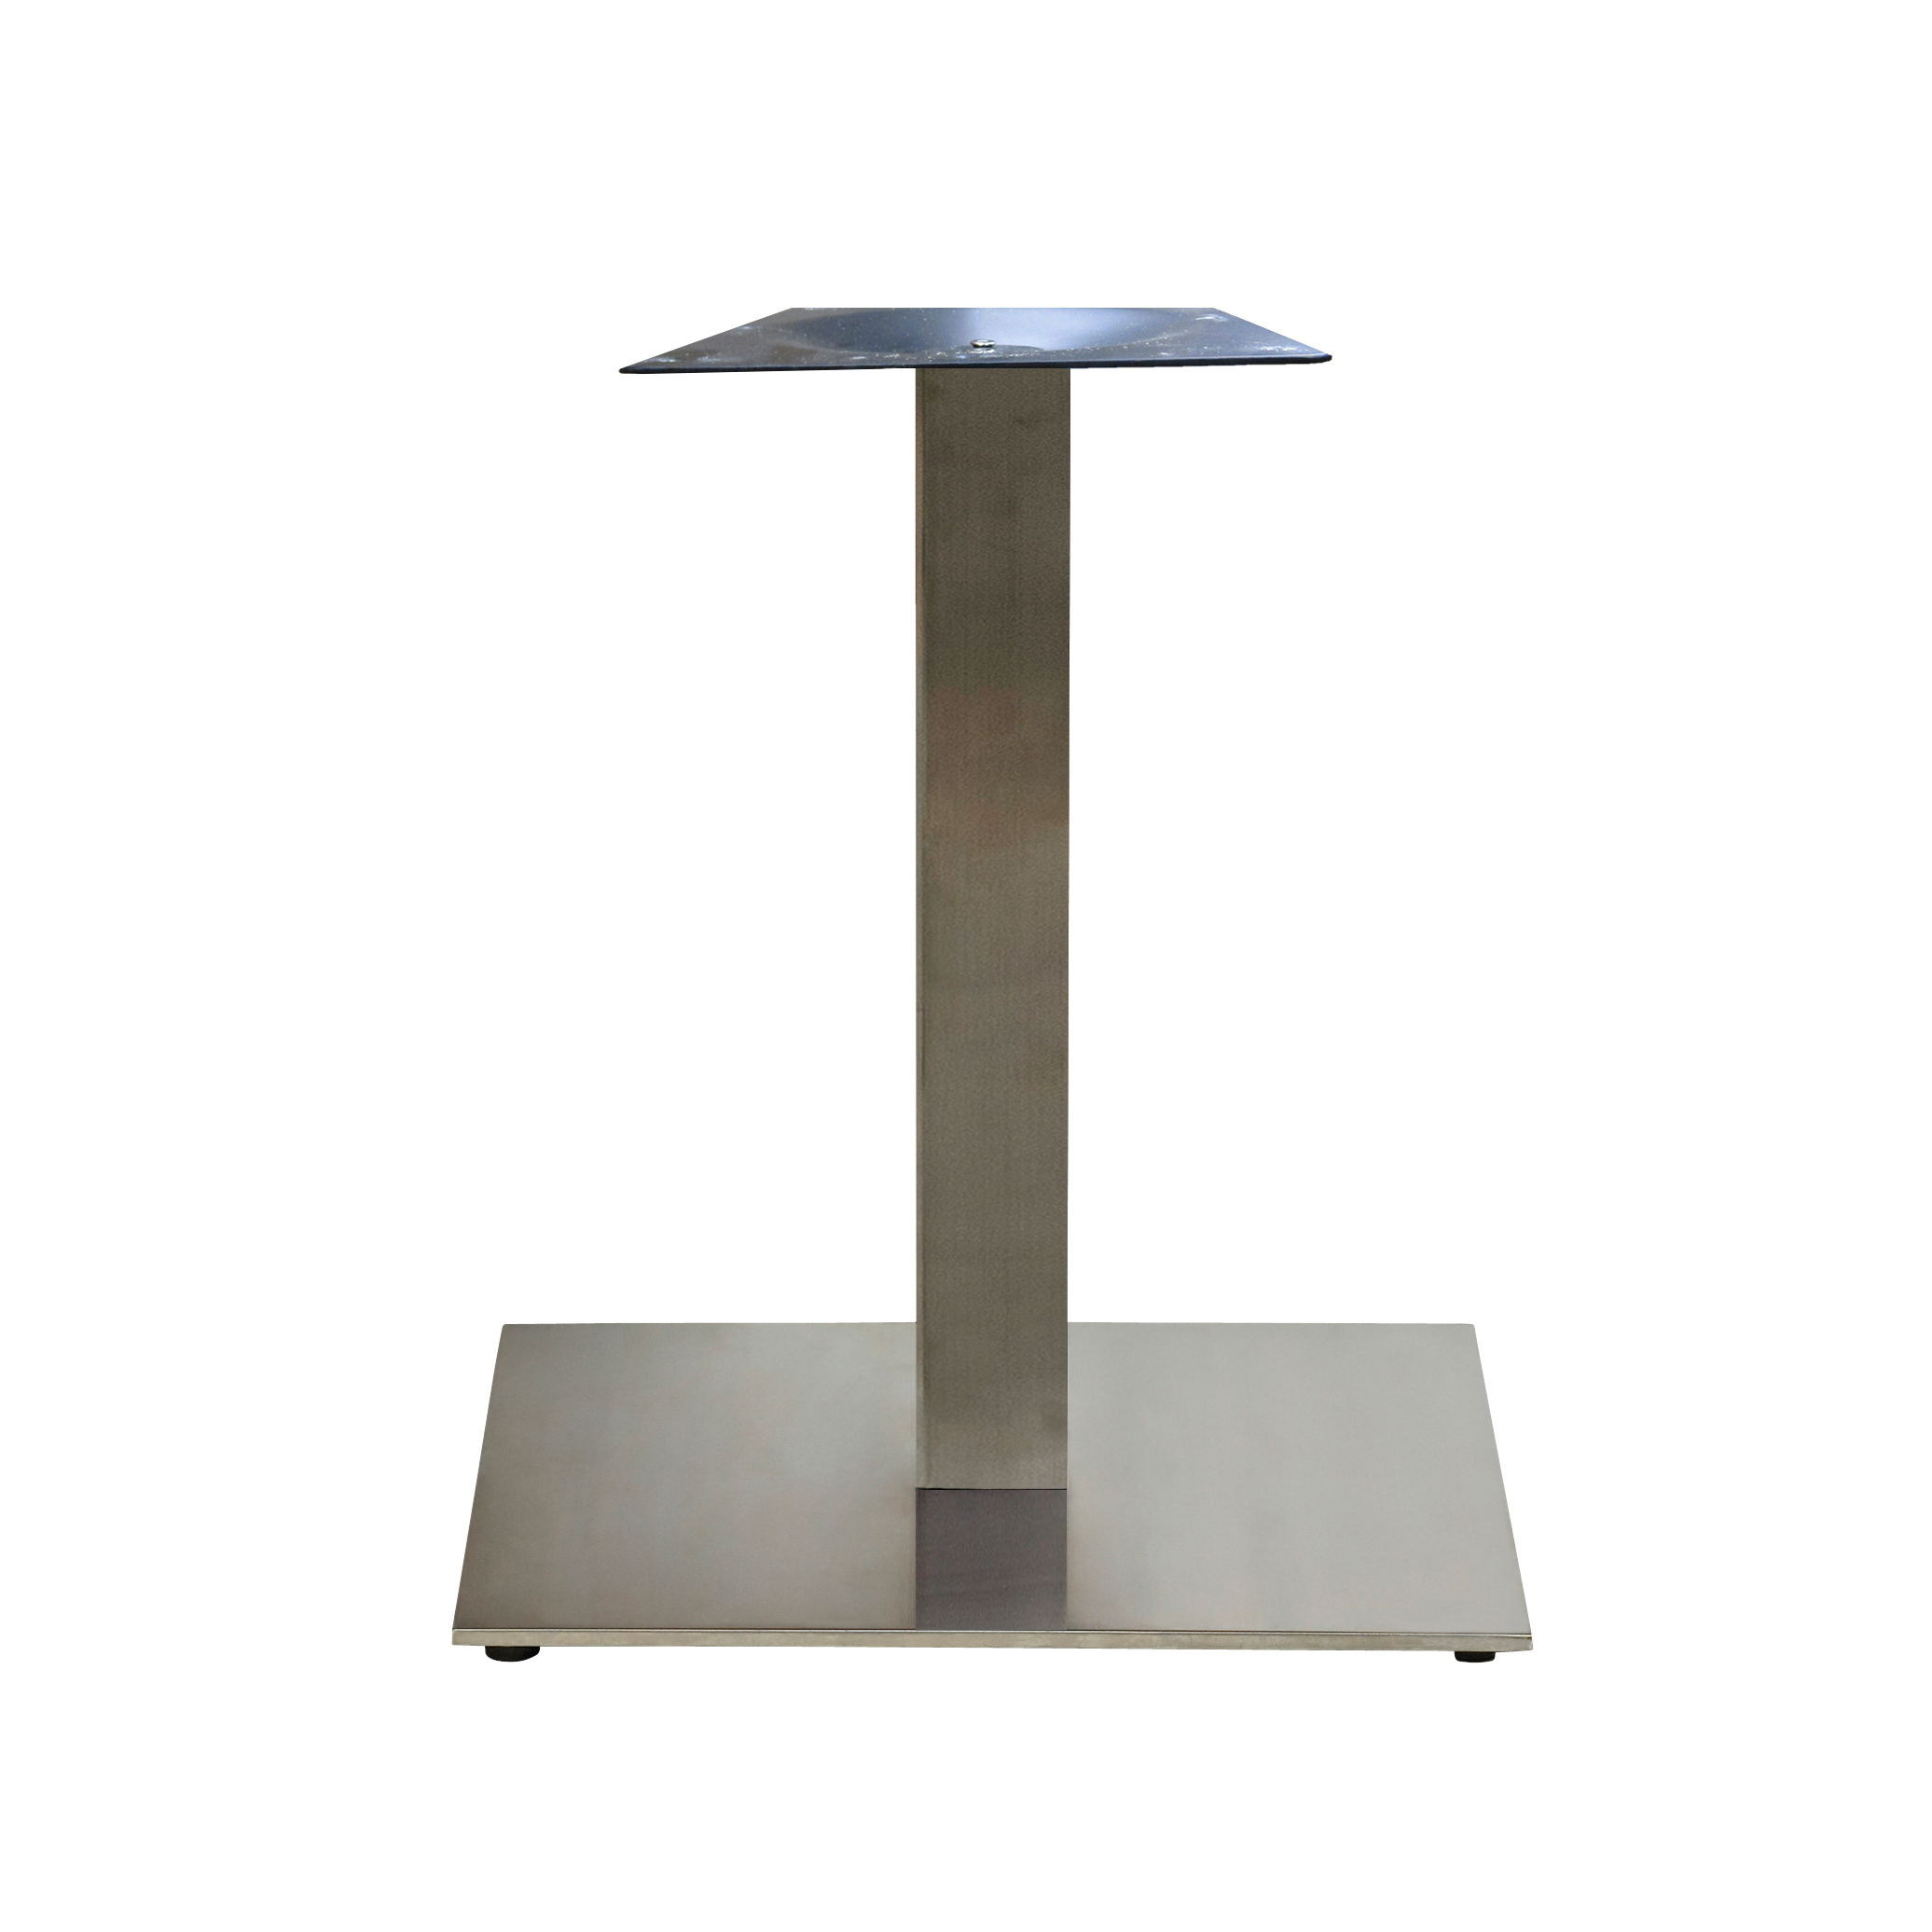 Grosfillex US517009 table base, metal